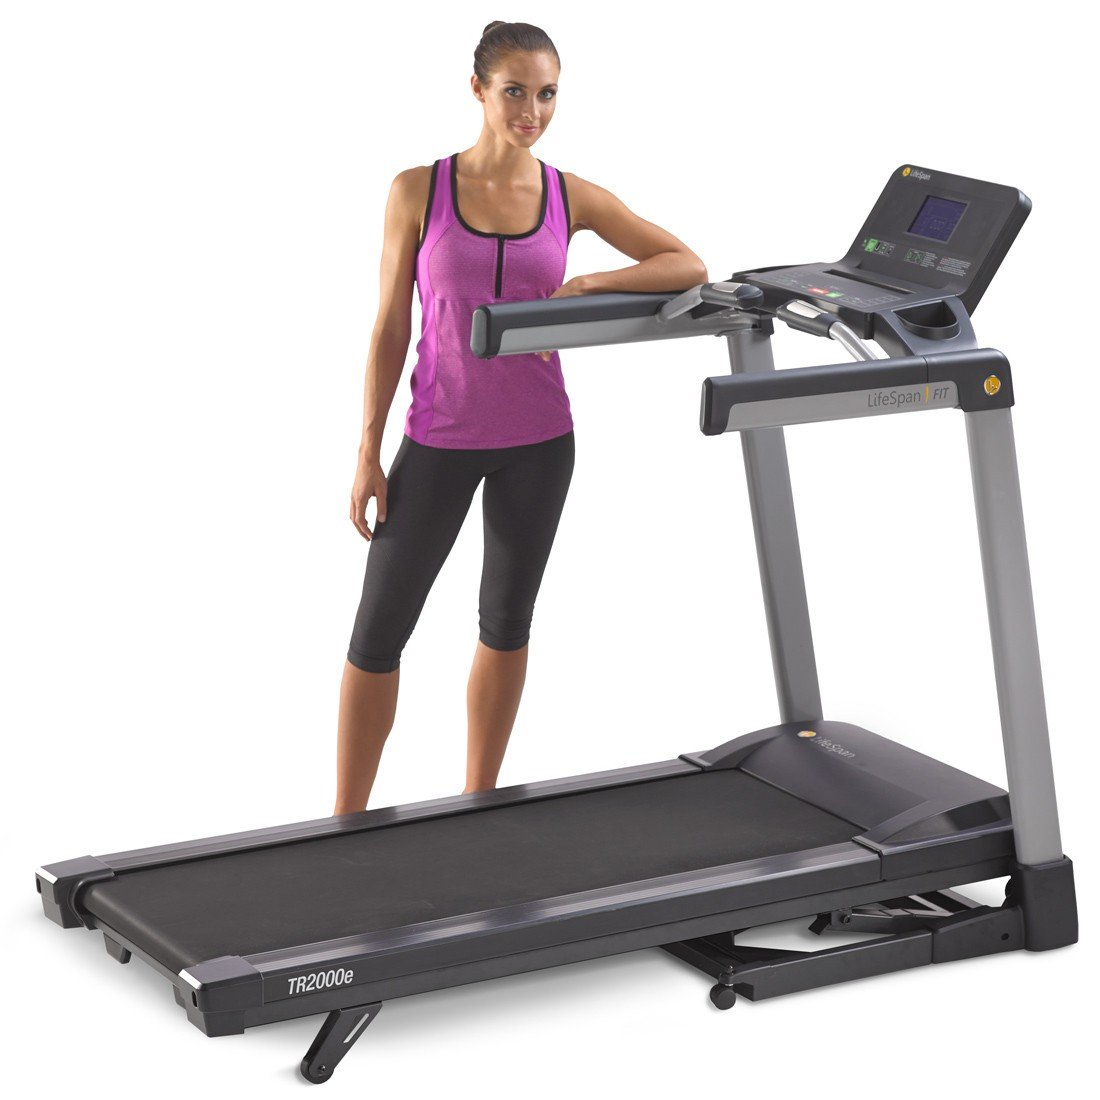 Lifespan TR2000e Folding Treadmill